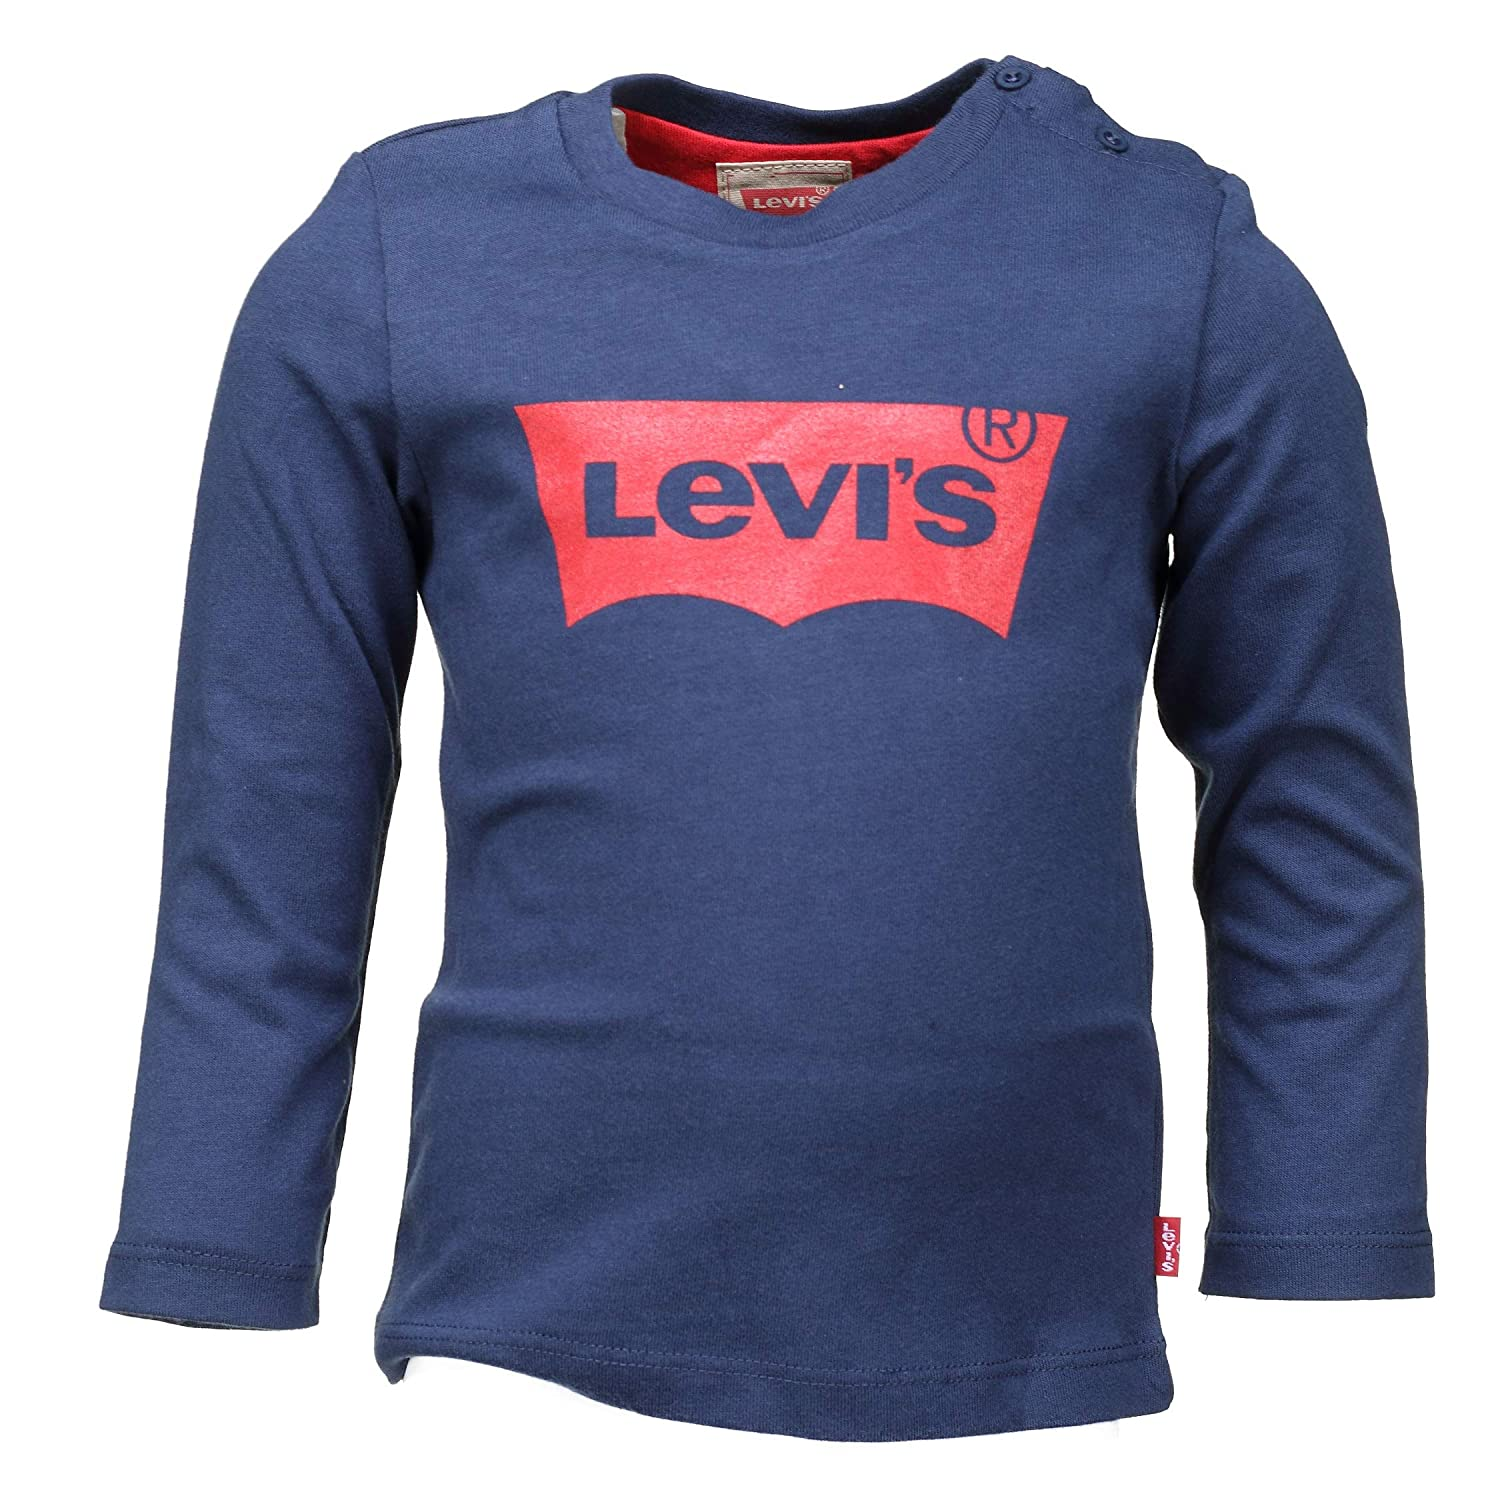 Levi's Kids Baby Boys' T-Shirt Levi's Kids NM10104